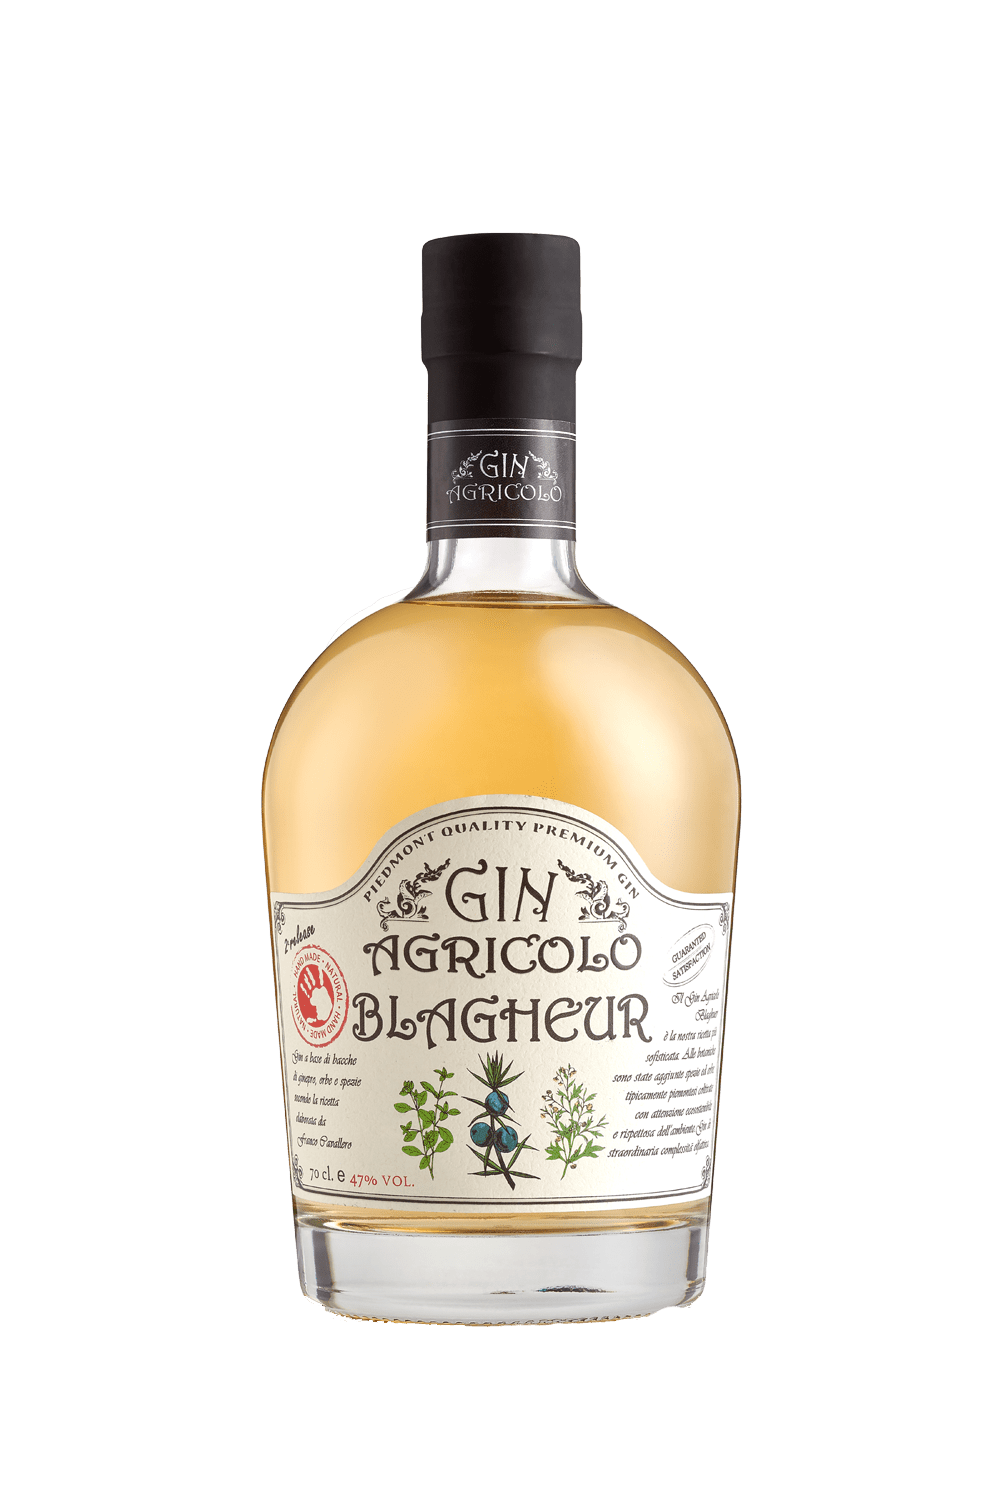 Gin Agricolo Blagheur